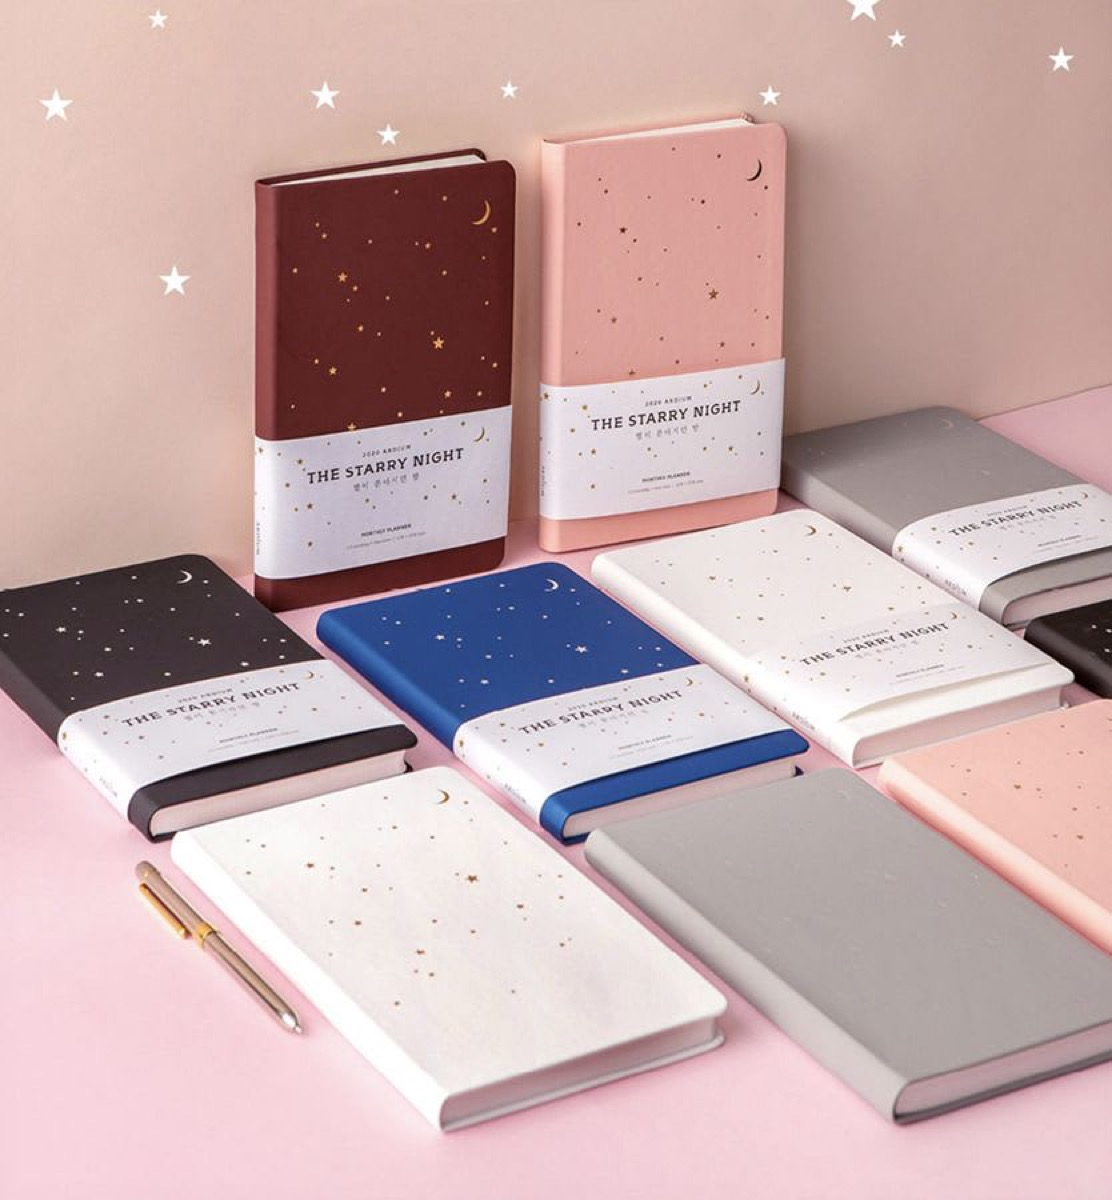 Set of 2020 planners with star design